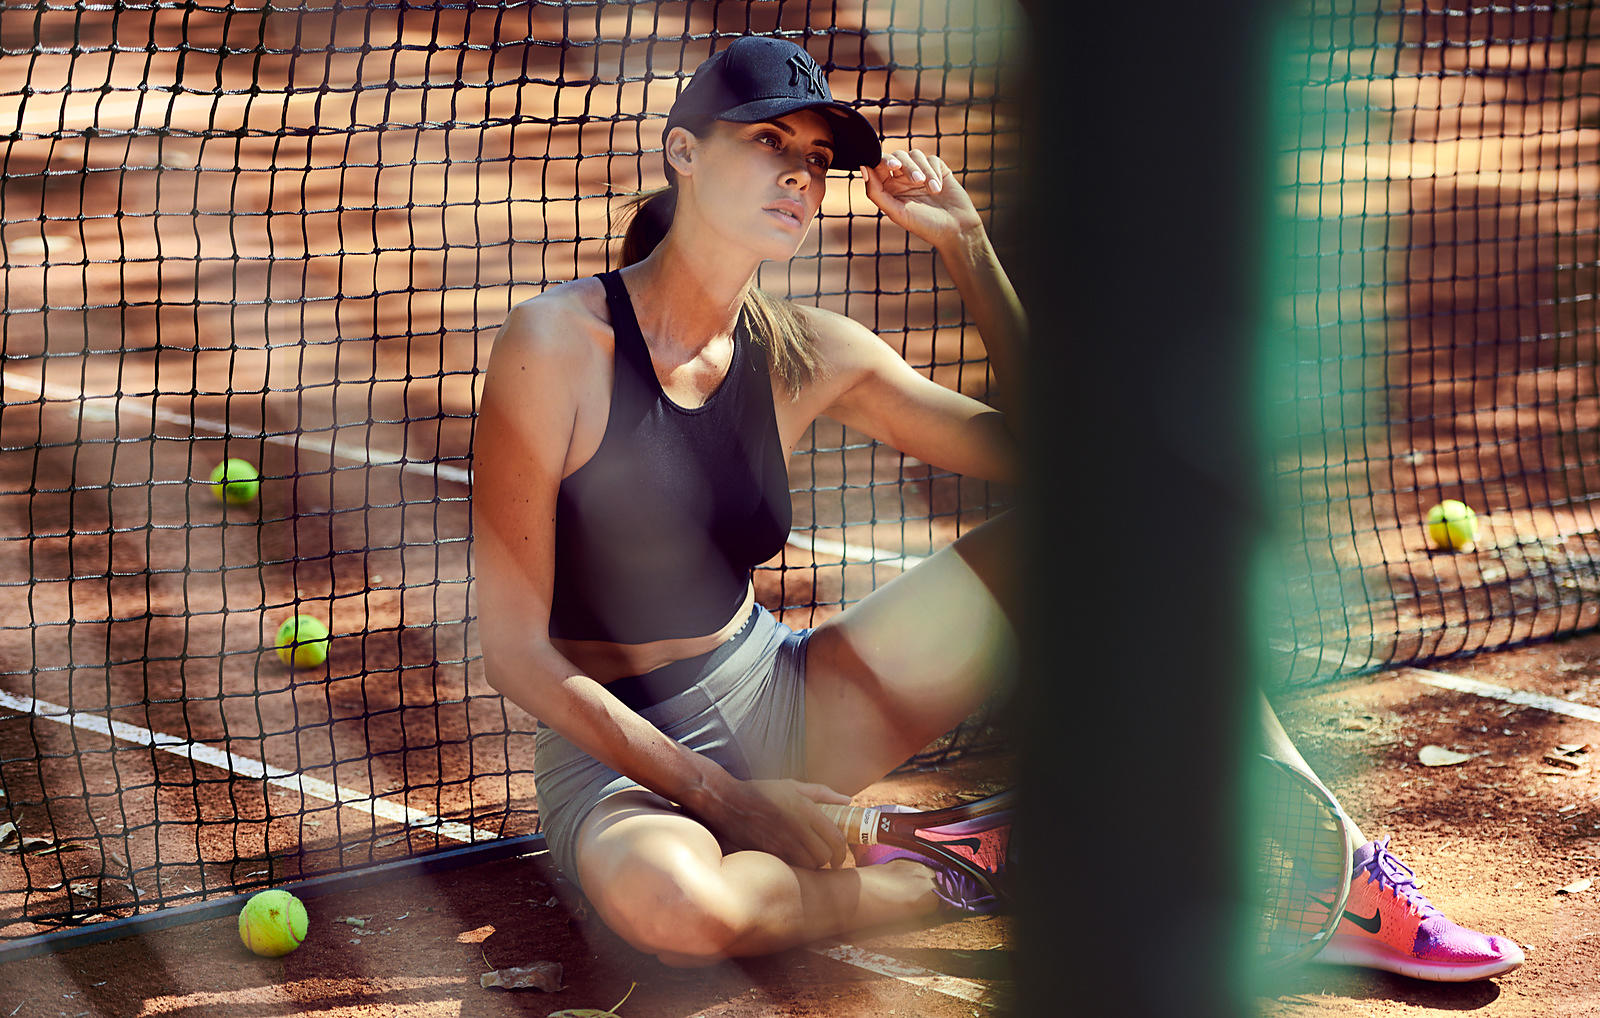 female tennis model | Matt Leete Photographer